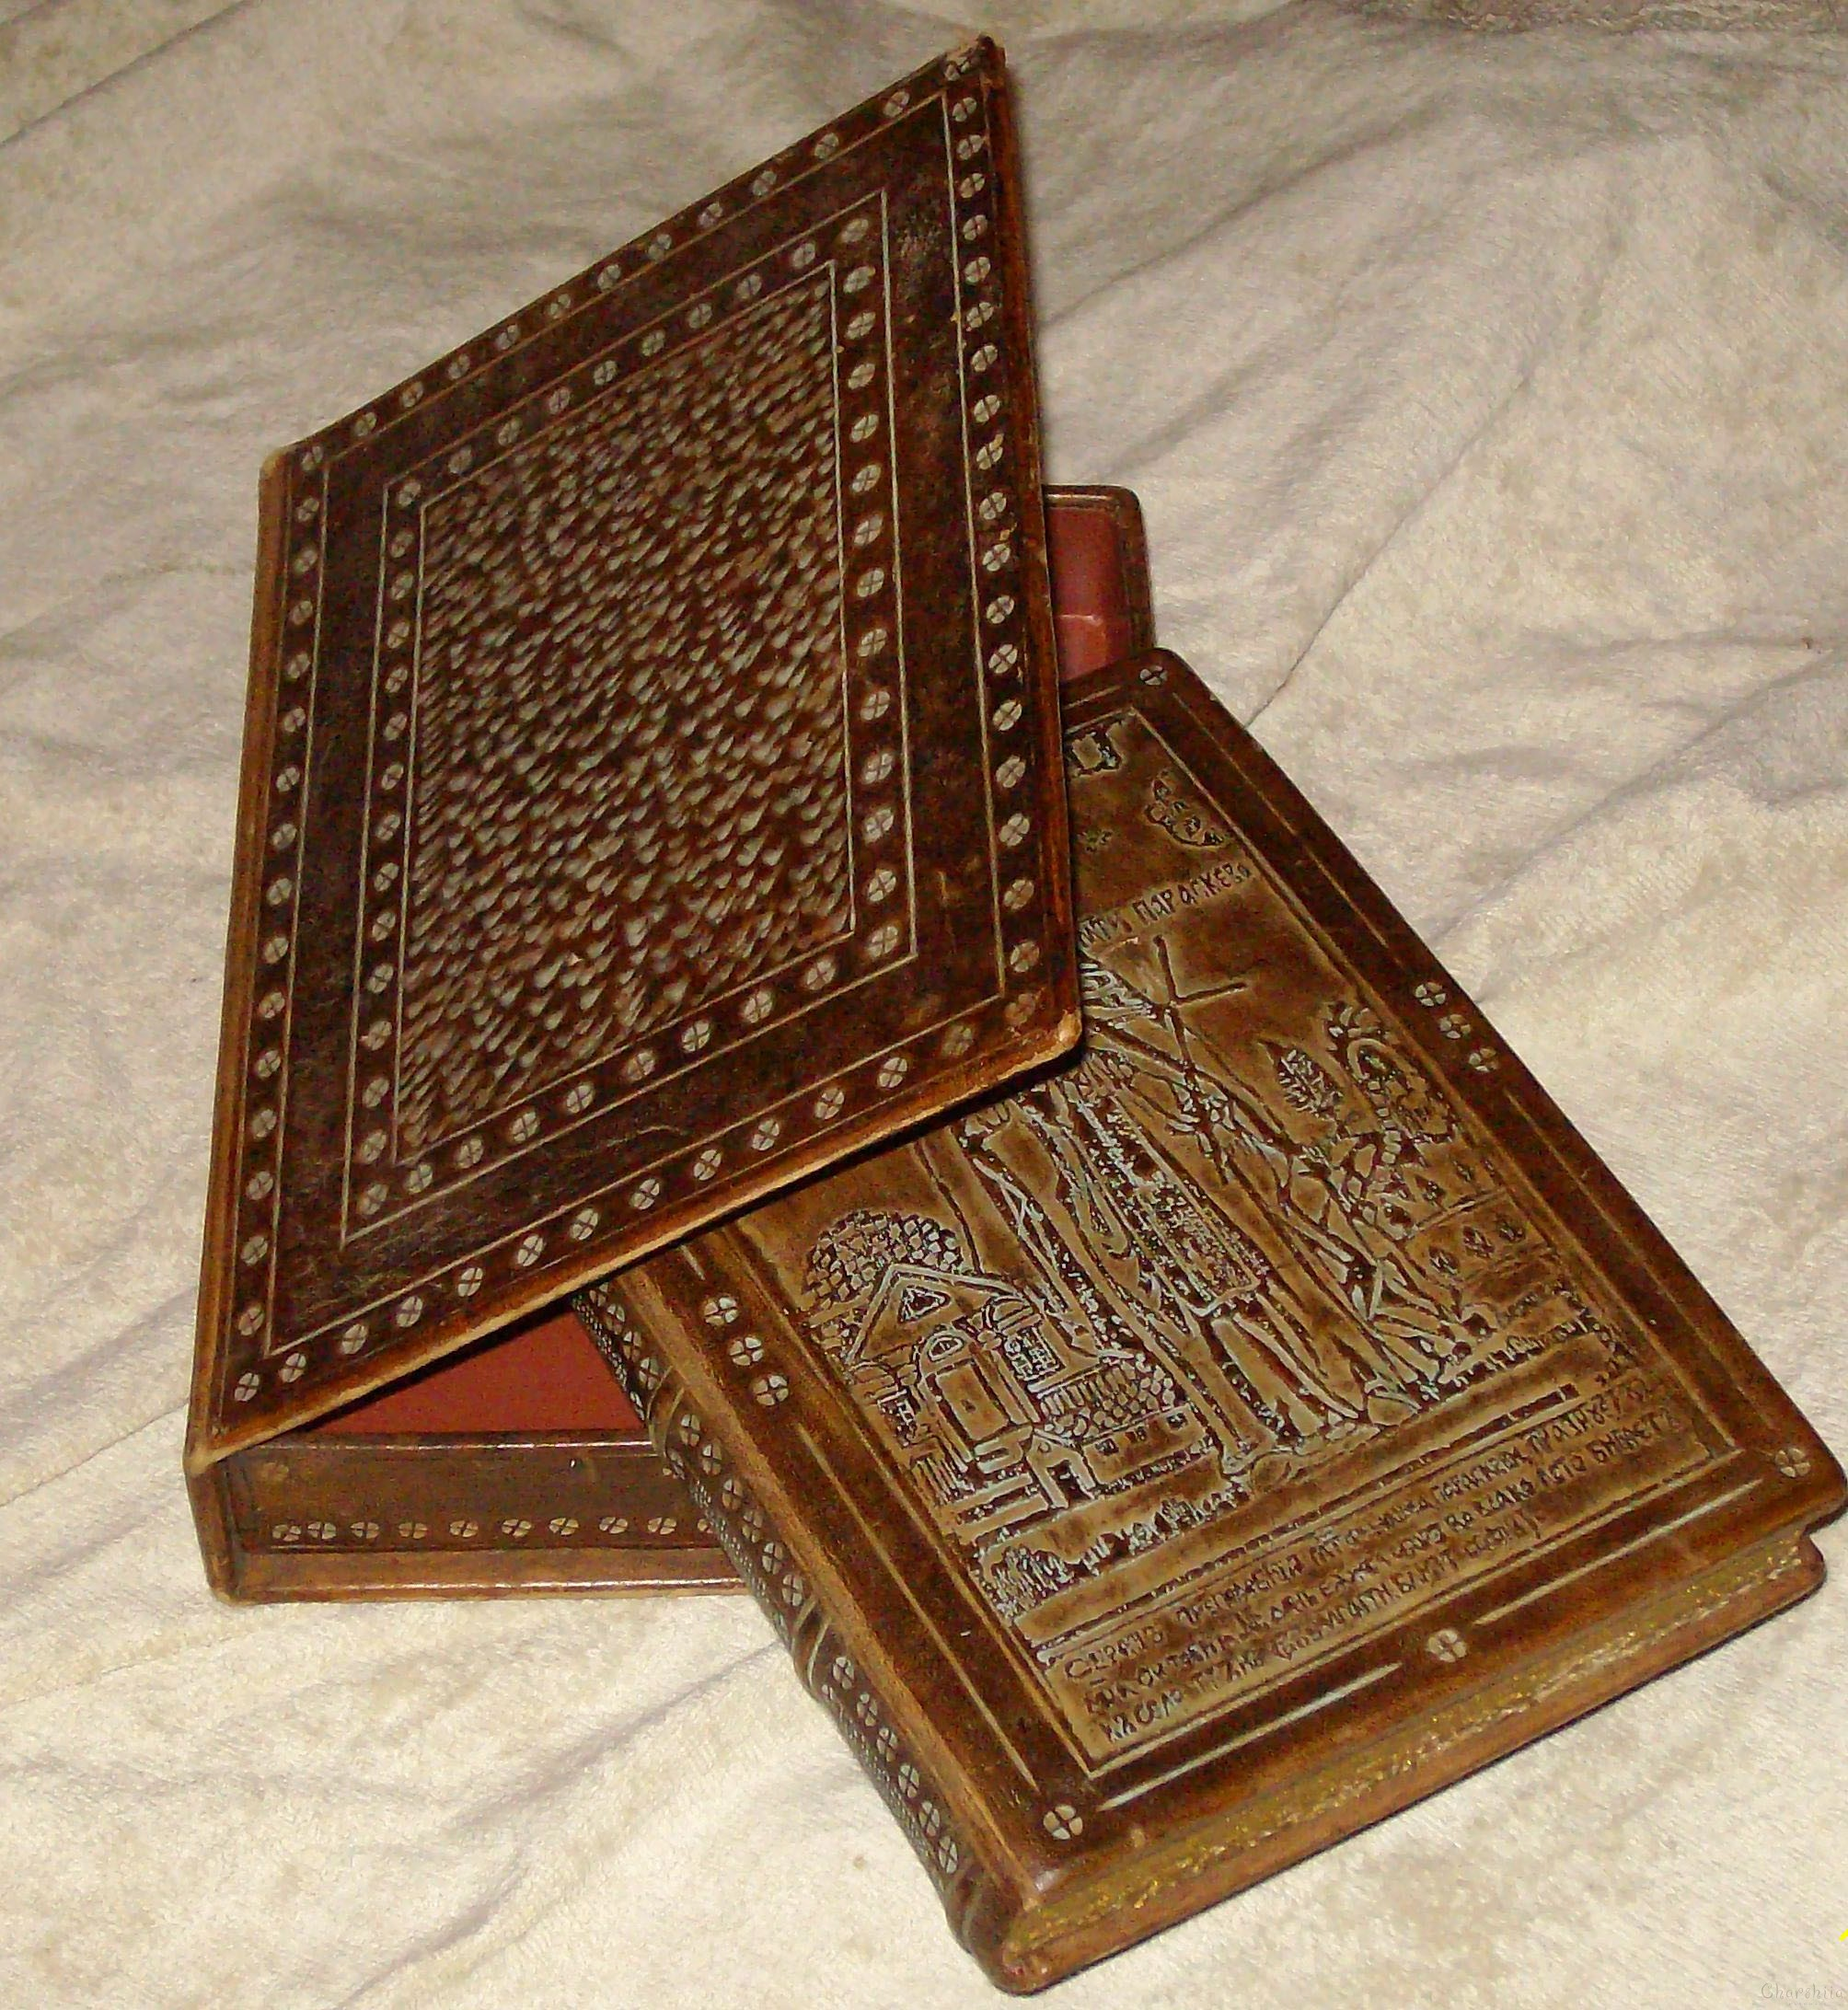 Book cover with a box, genuine leather